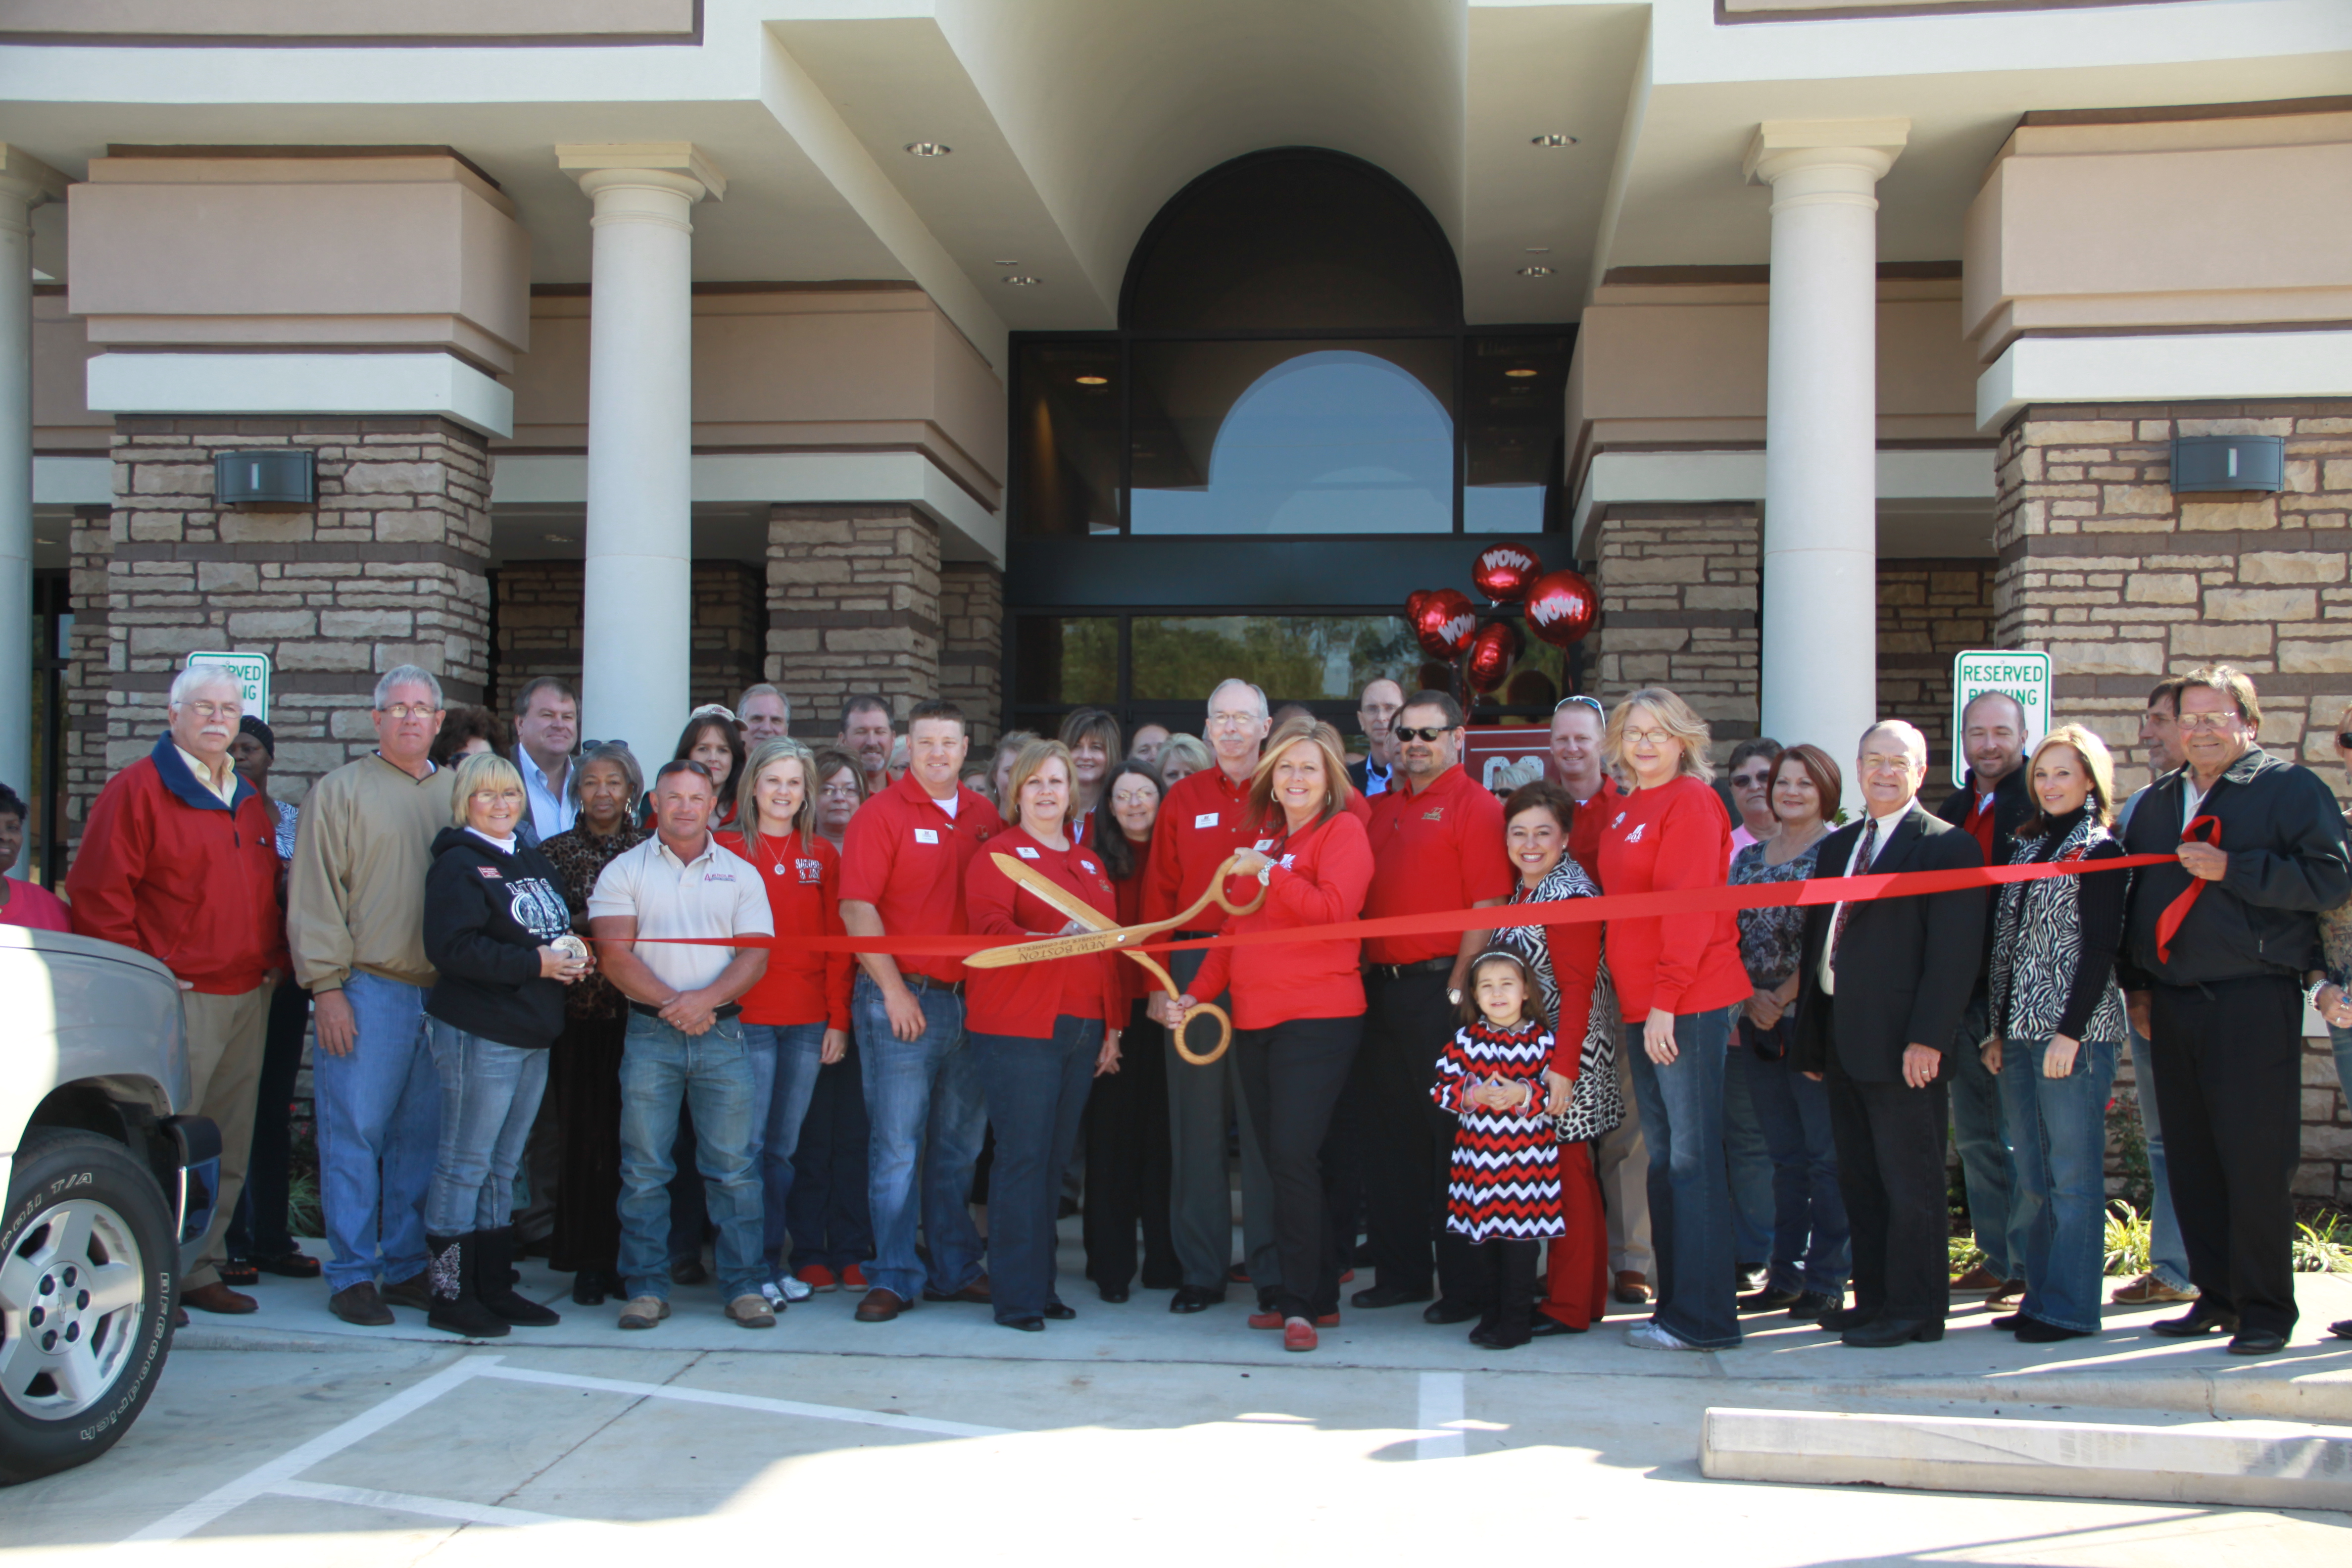 Grand Opening of 1st Bank, New Boston TX